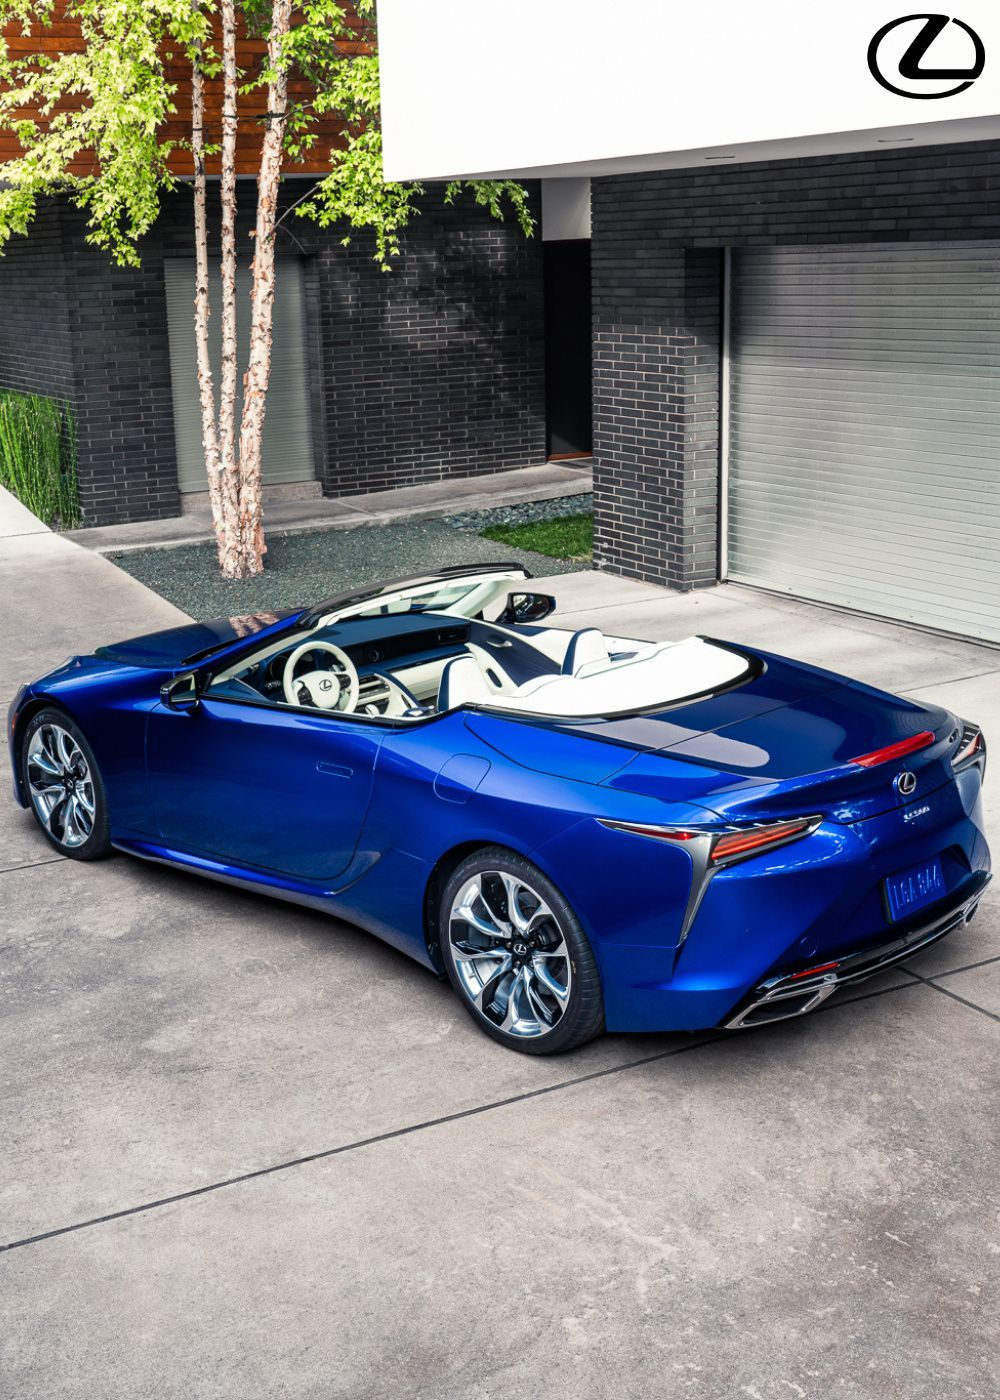 The Lexus LC 500 Regatta Edition Convertible is finished in structural blue, mimicking the depth of colour found in the natural world. Click to find out more. #Lexus #LexusLC #LCConvertible #LexusLCConvertible #LC500 #LuxuryCars #NewCars #ConvertibleCars #CarDesign #CarBodyDesign #Regatta